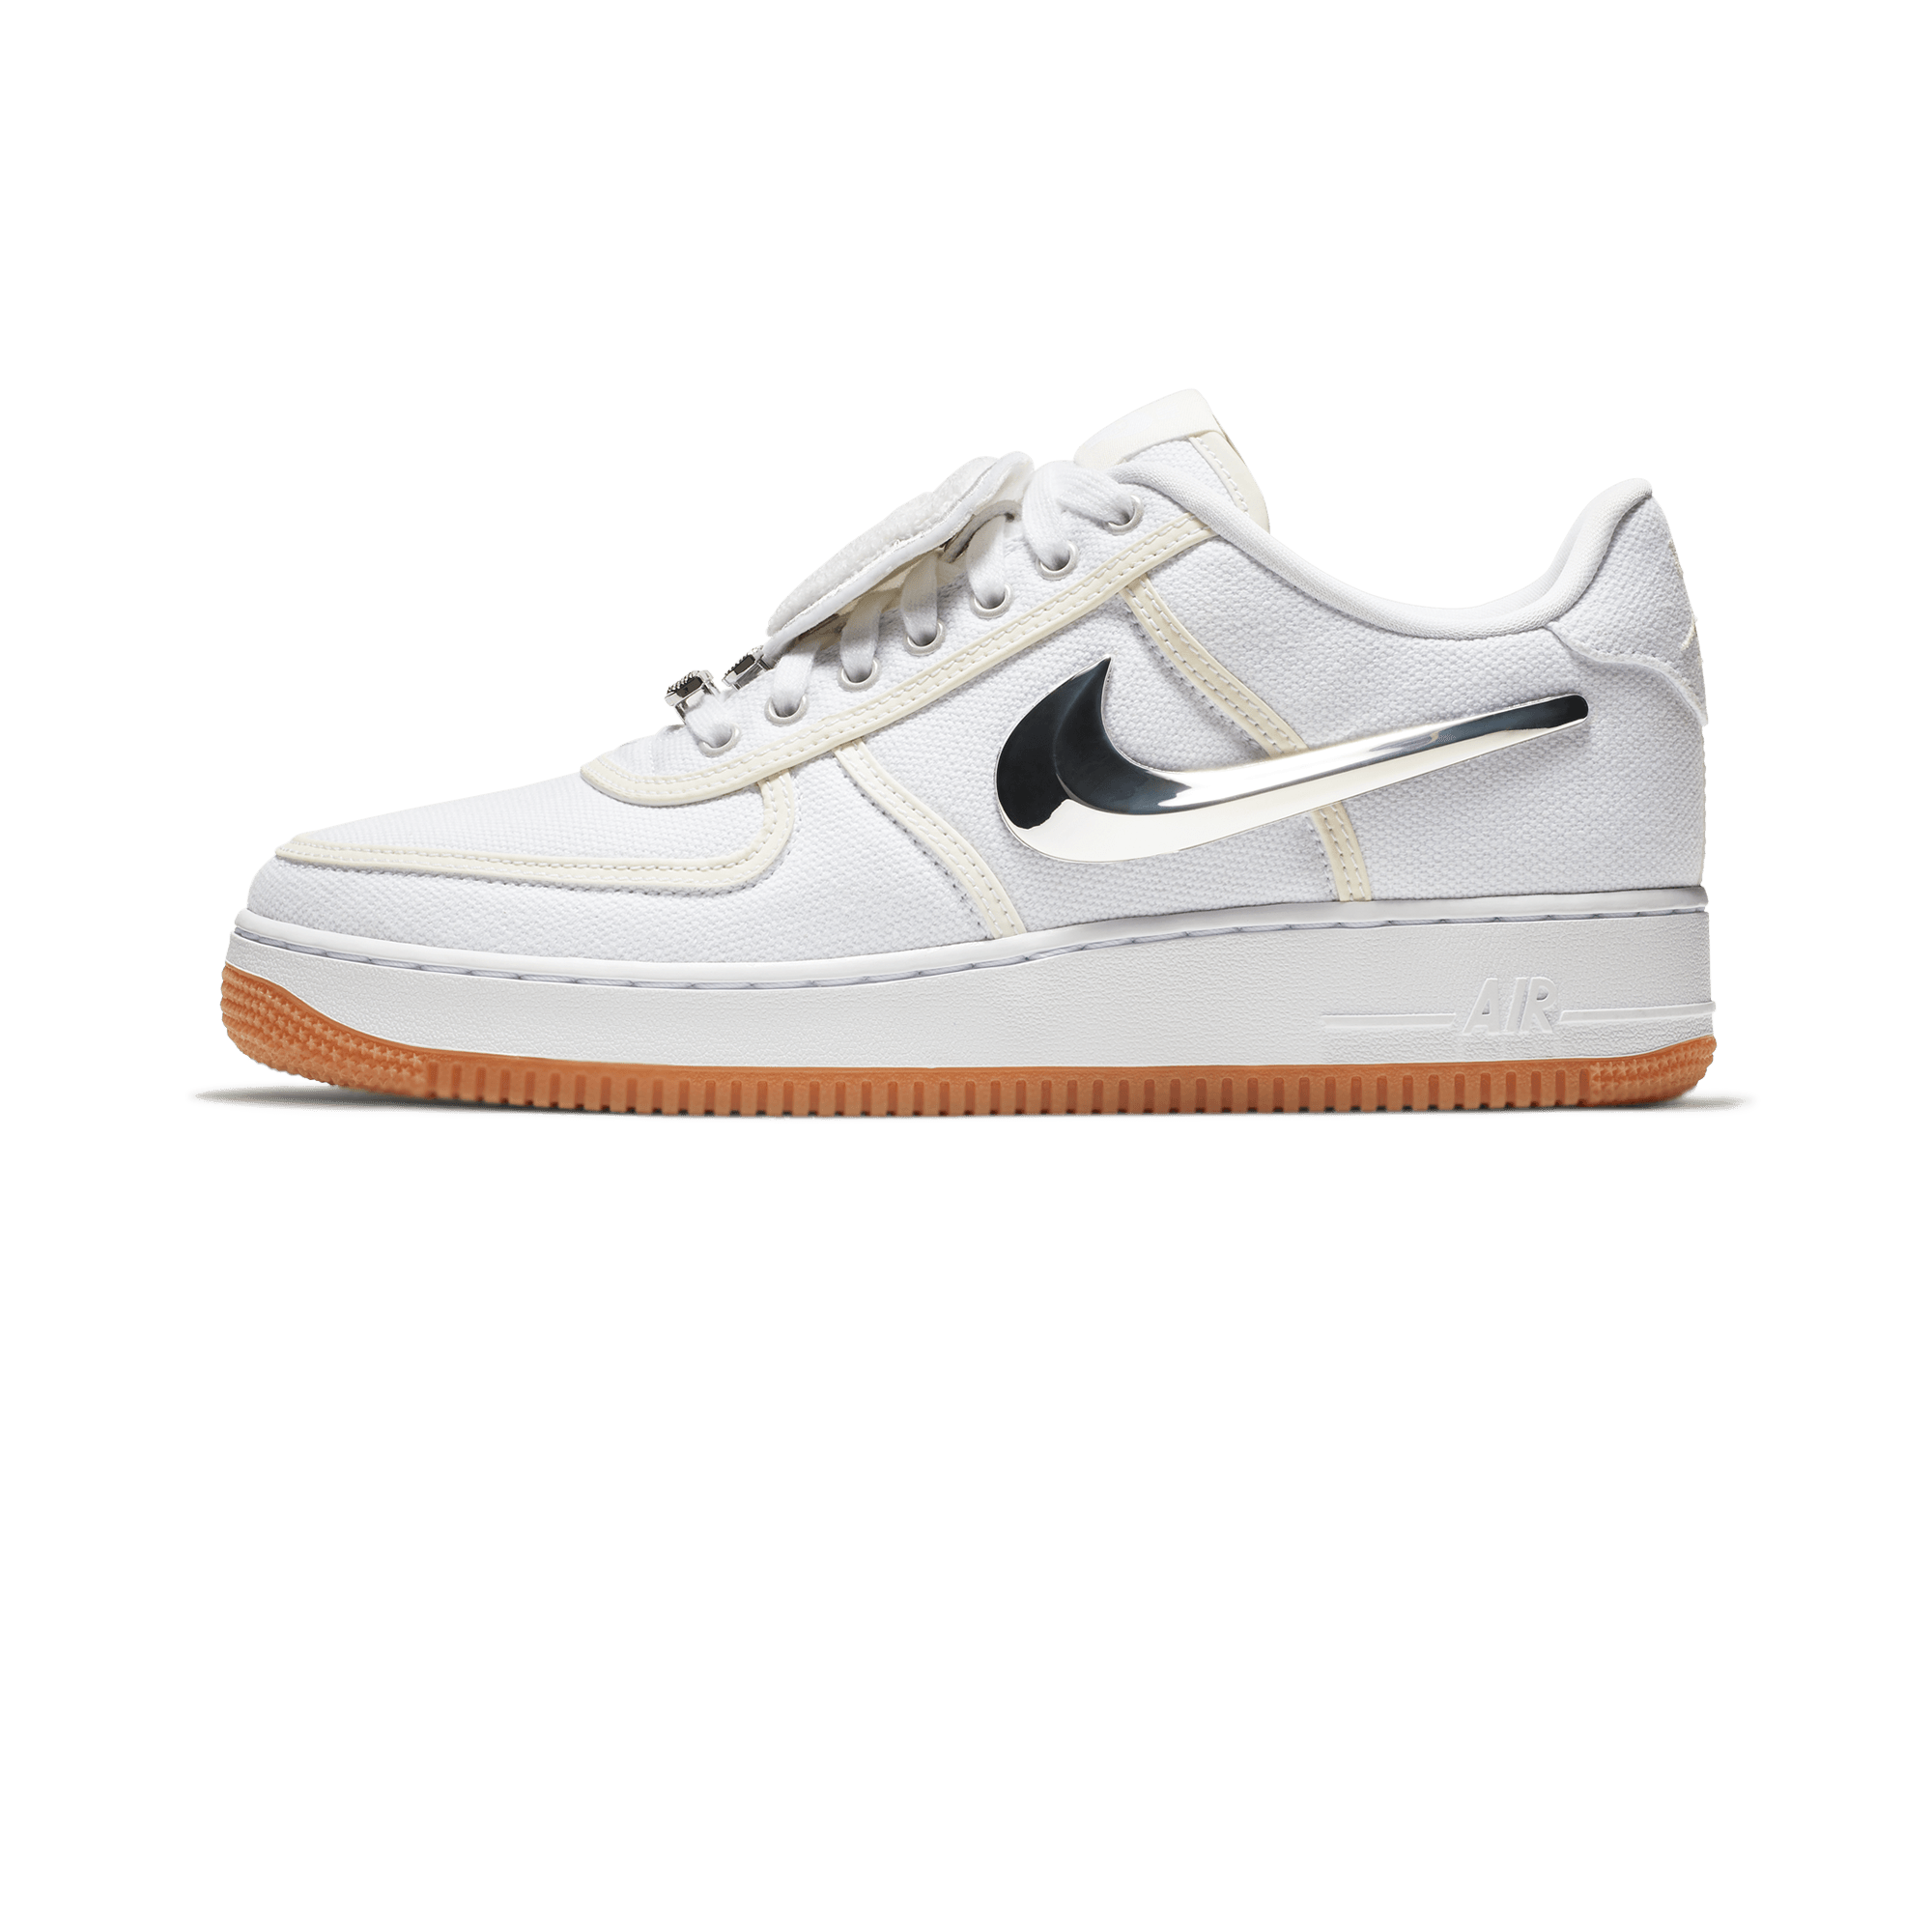 air force 1 taiwan nz